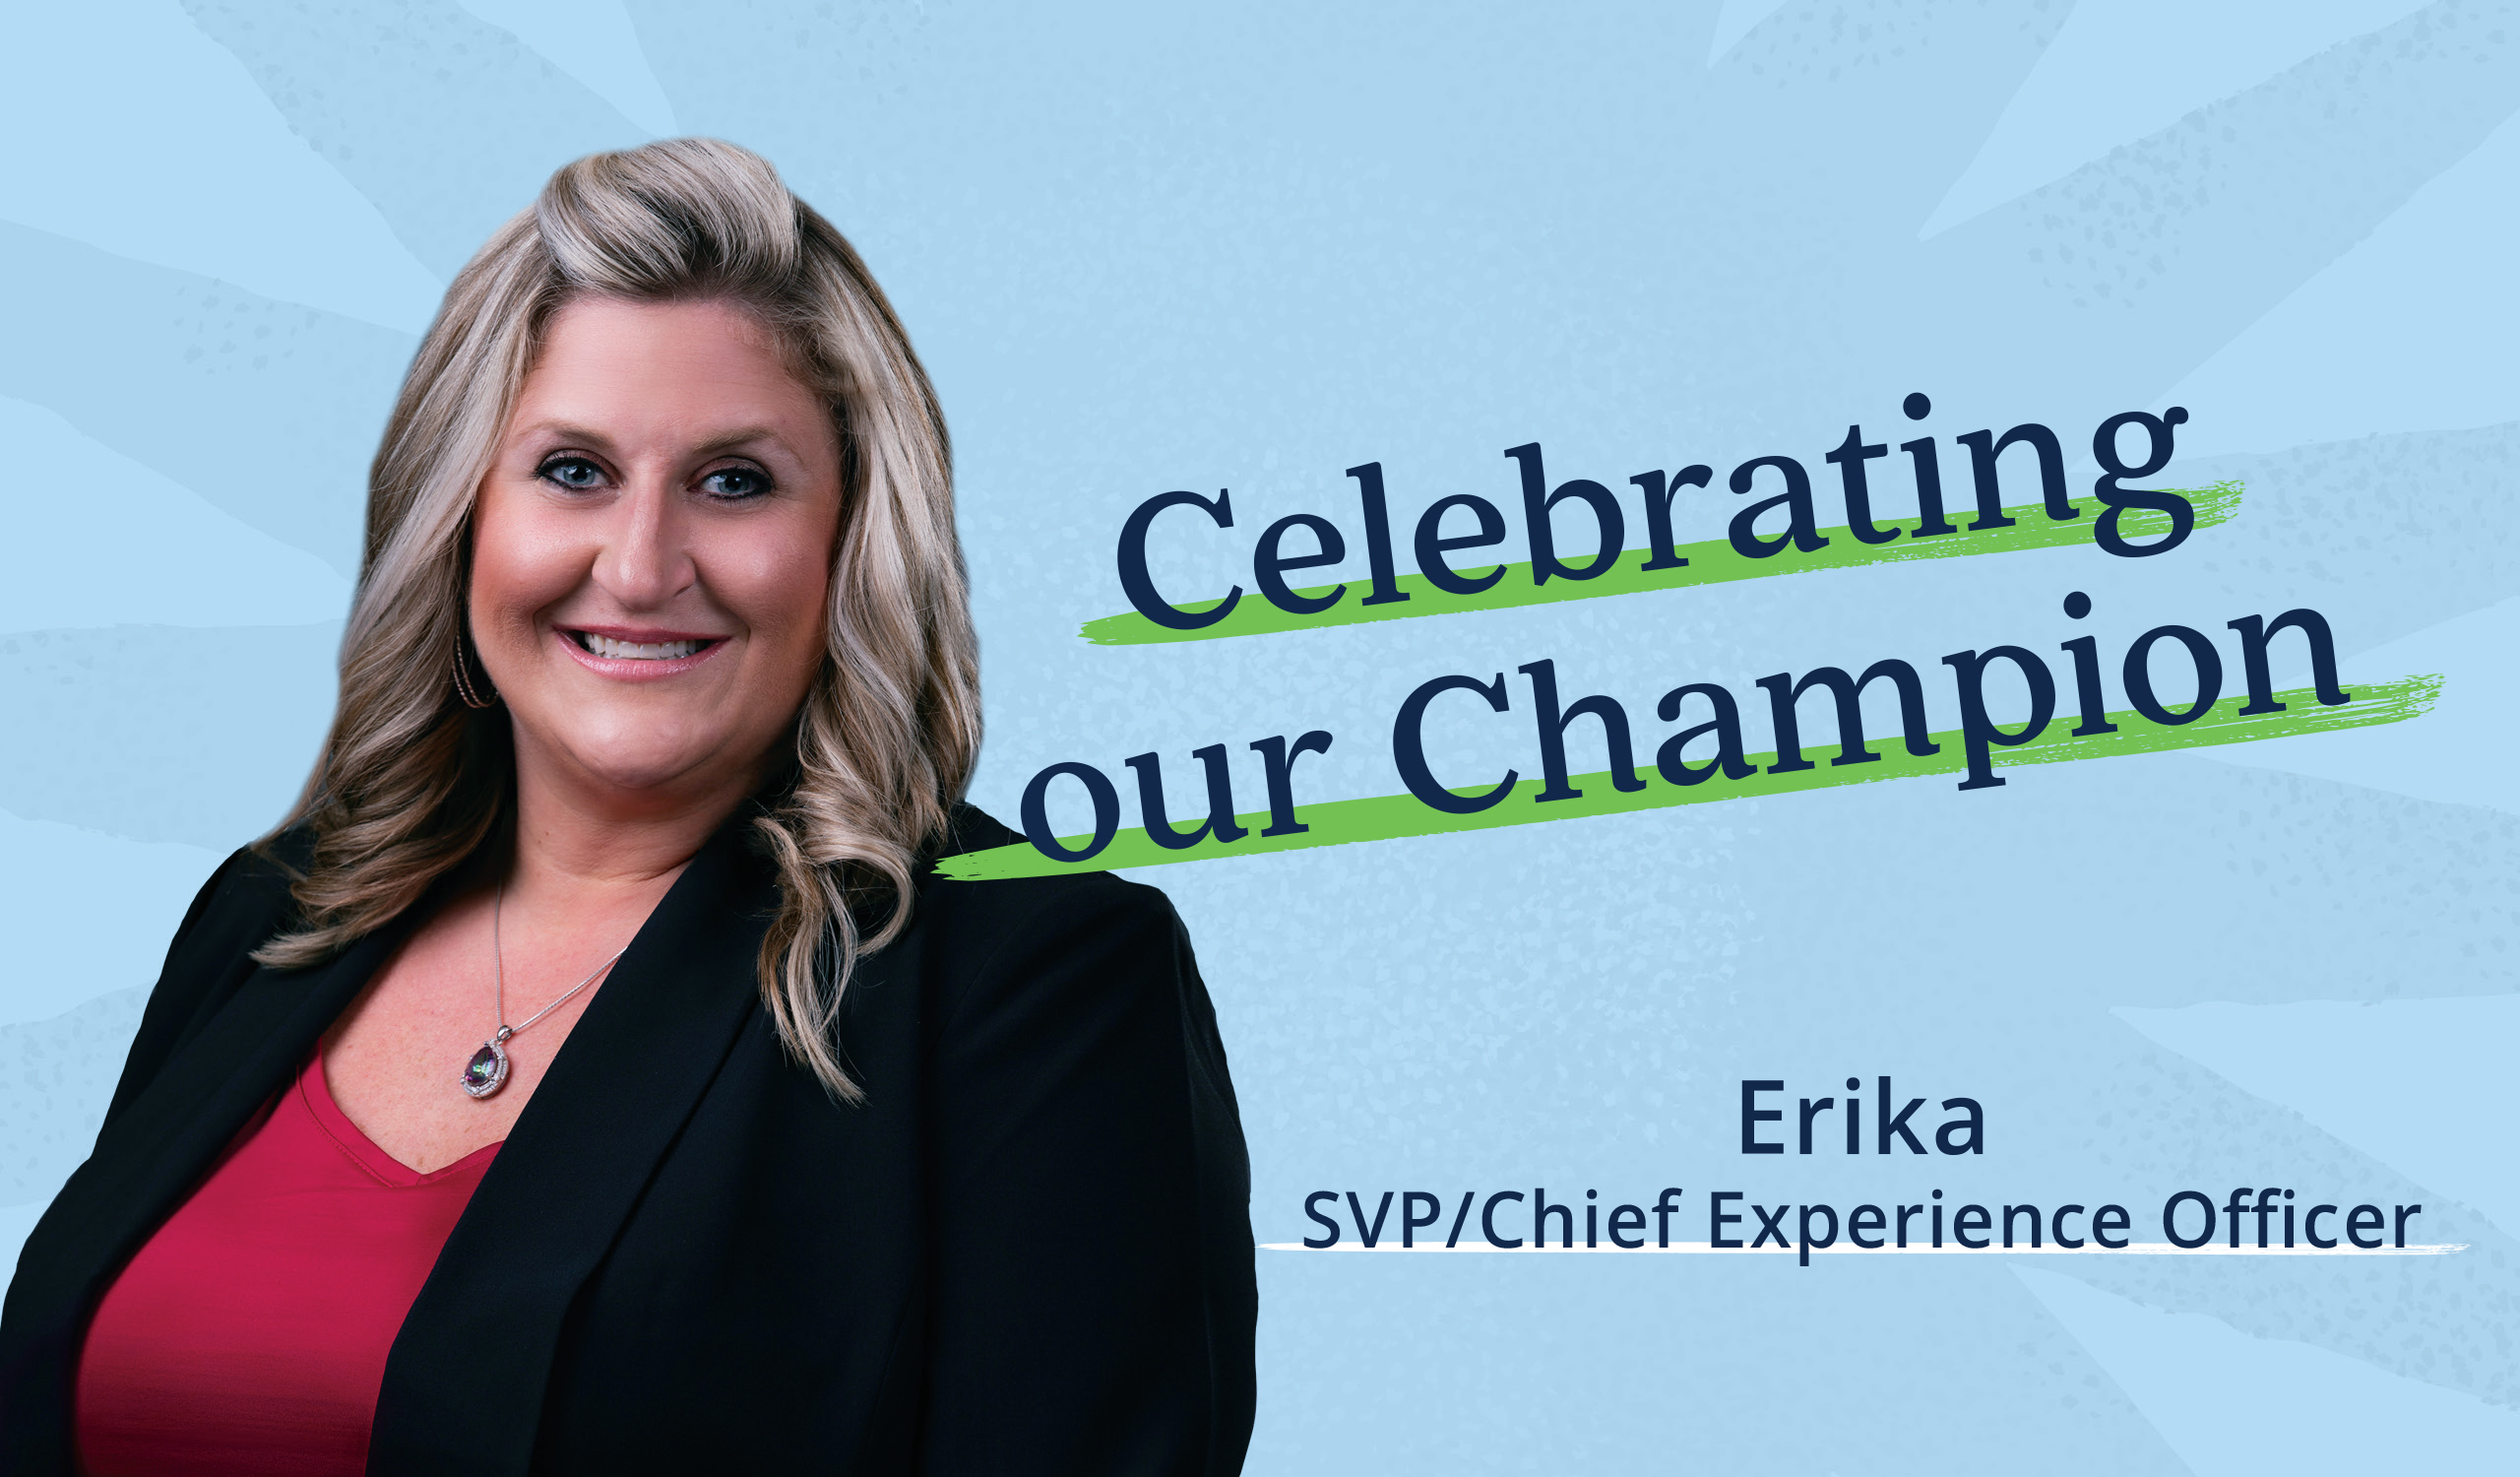 Q & A with Erika, SVP/Chief Experience Officer